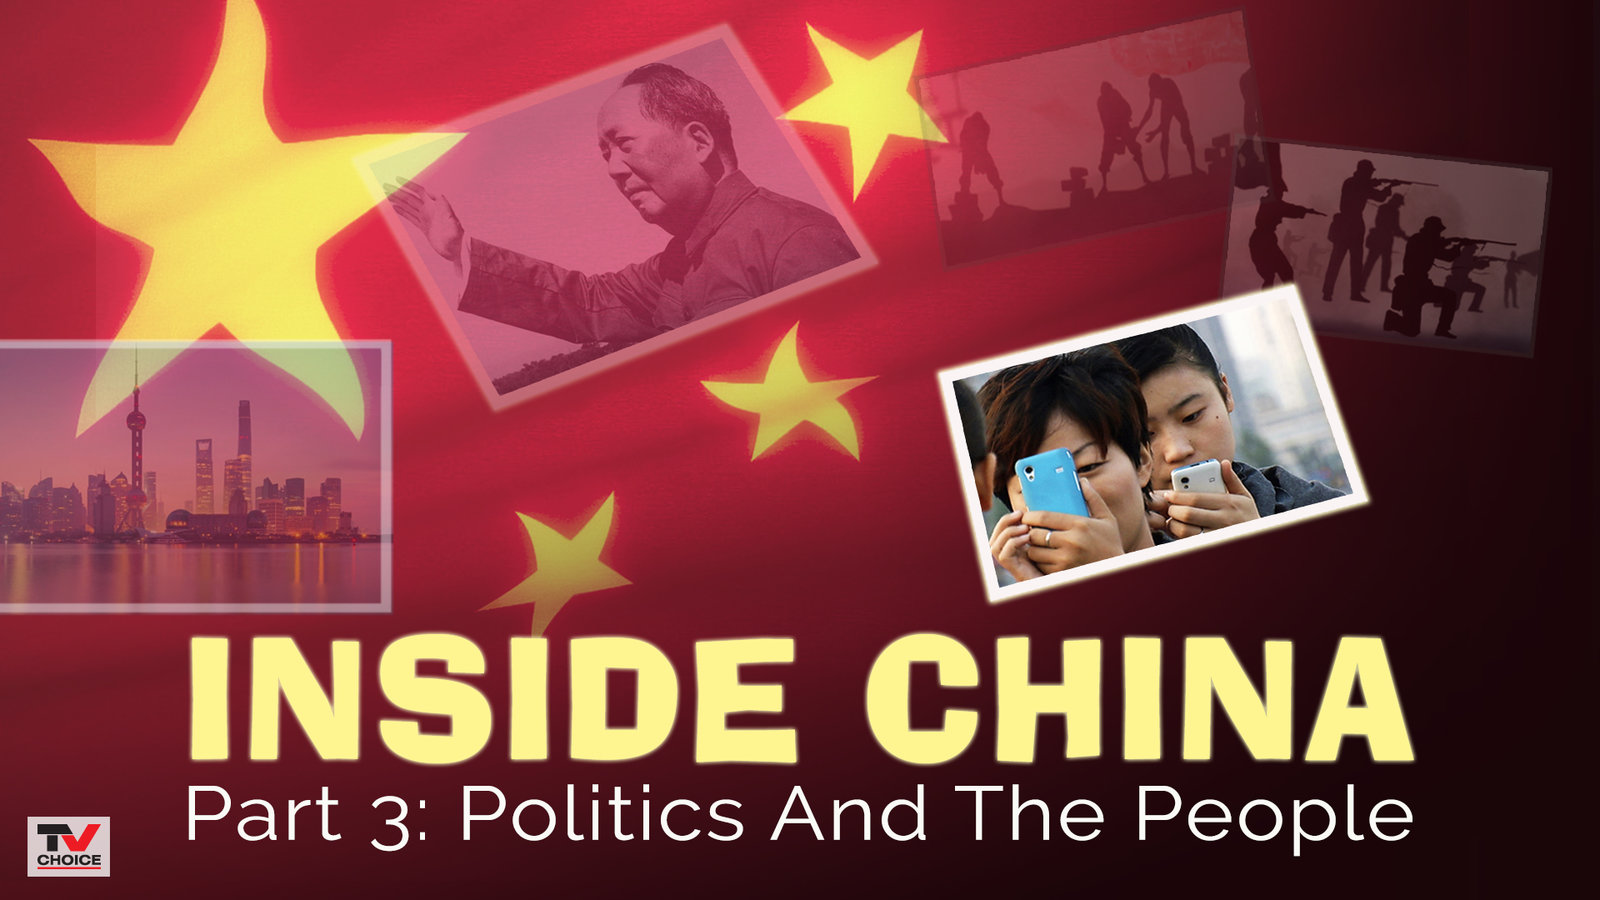 Inside China 3: Politics And The People